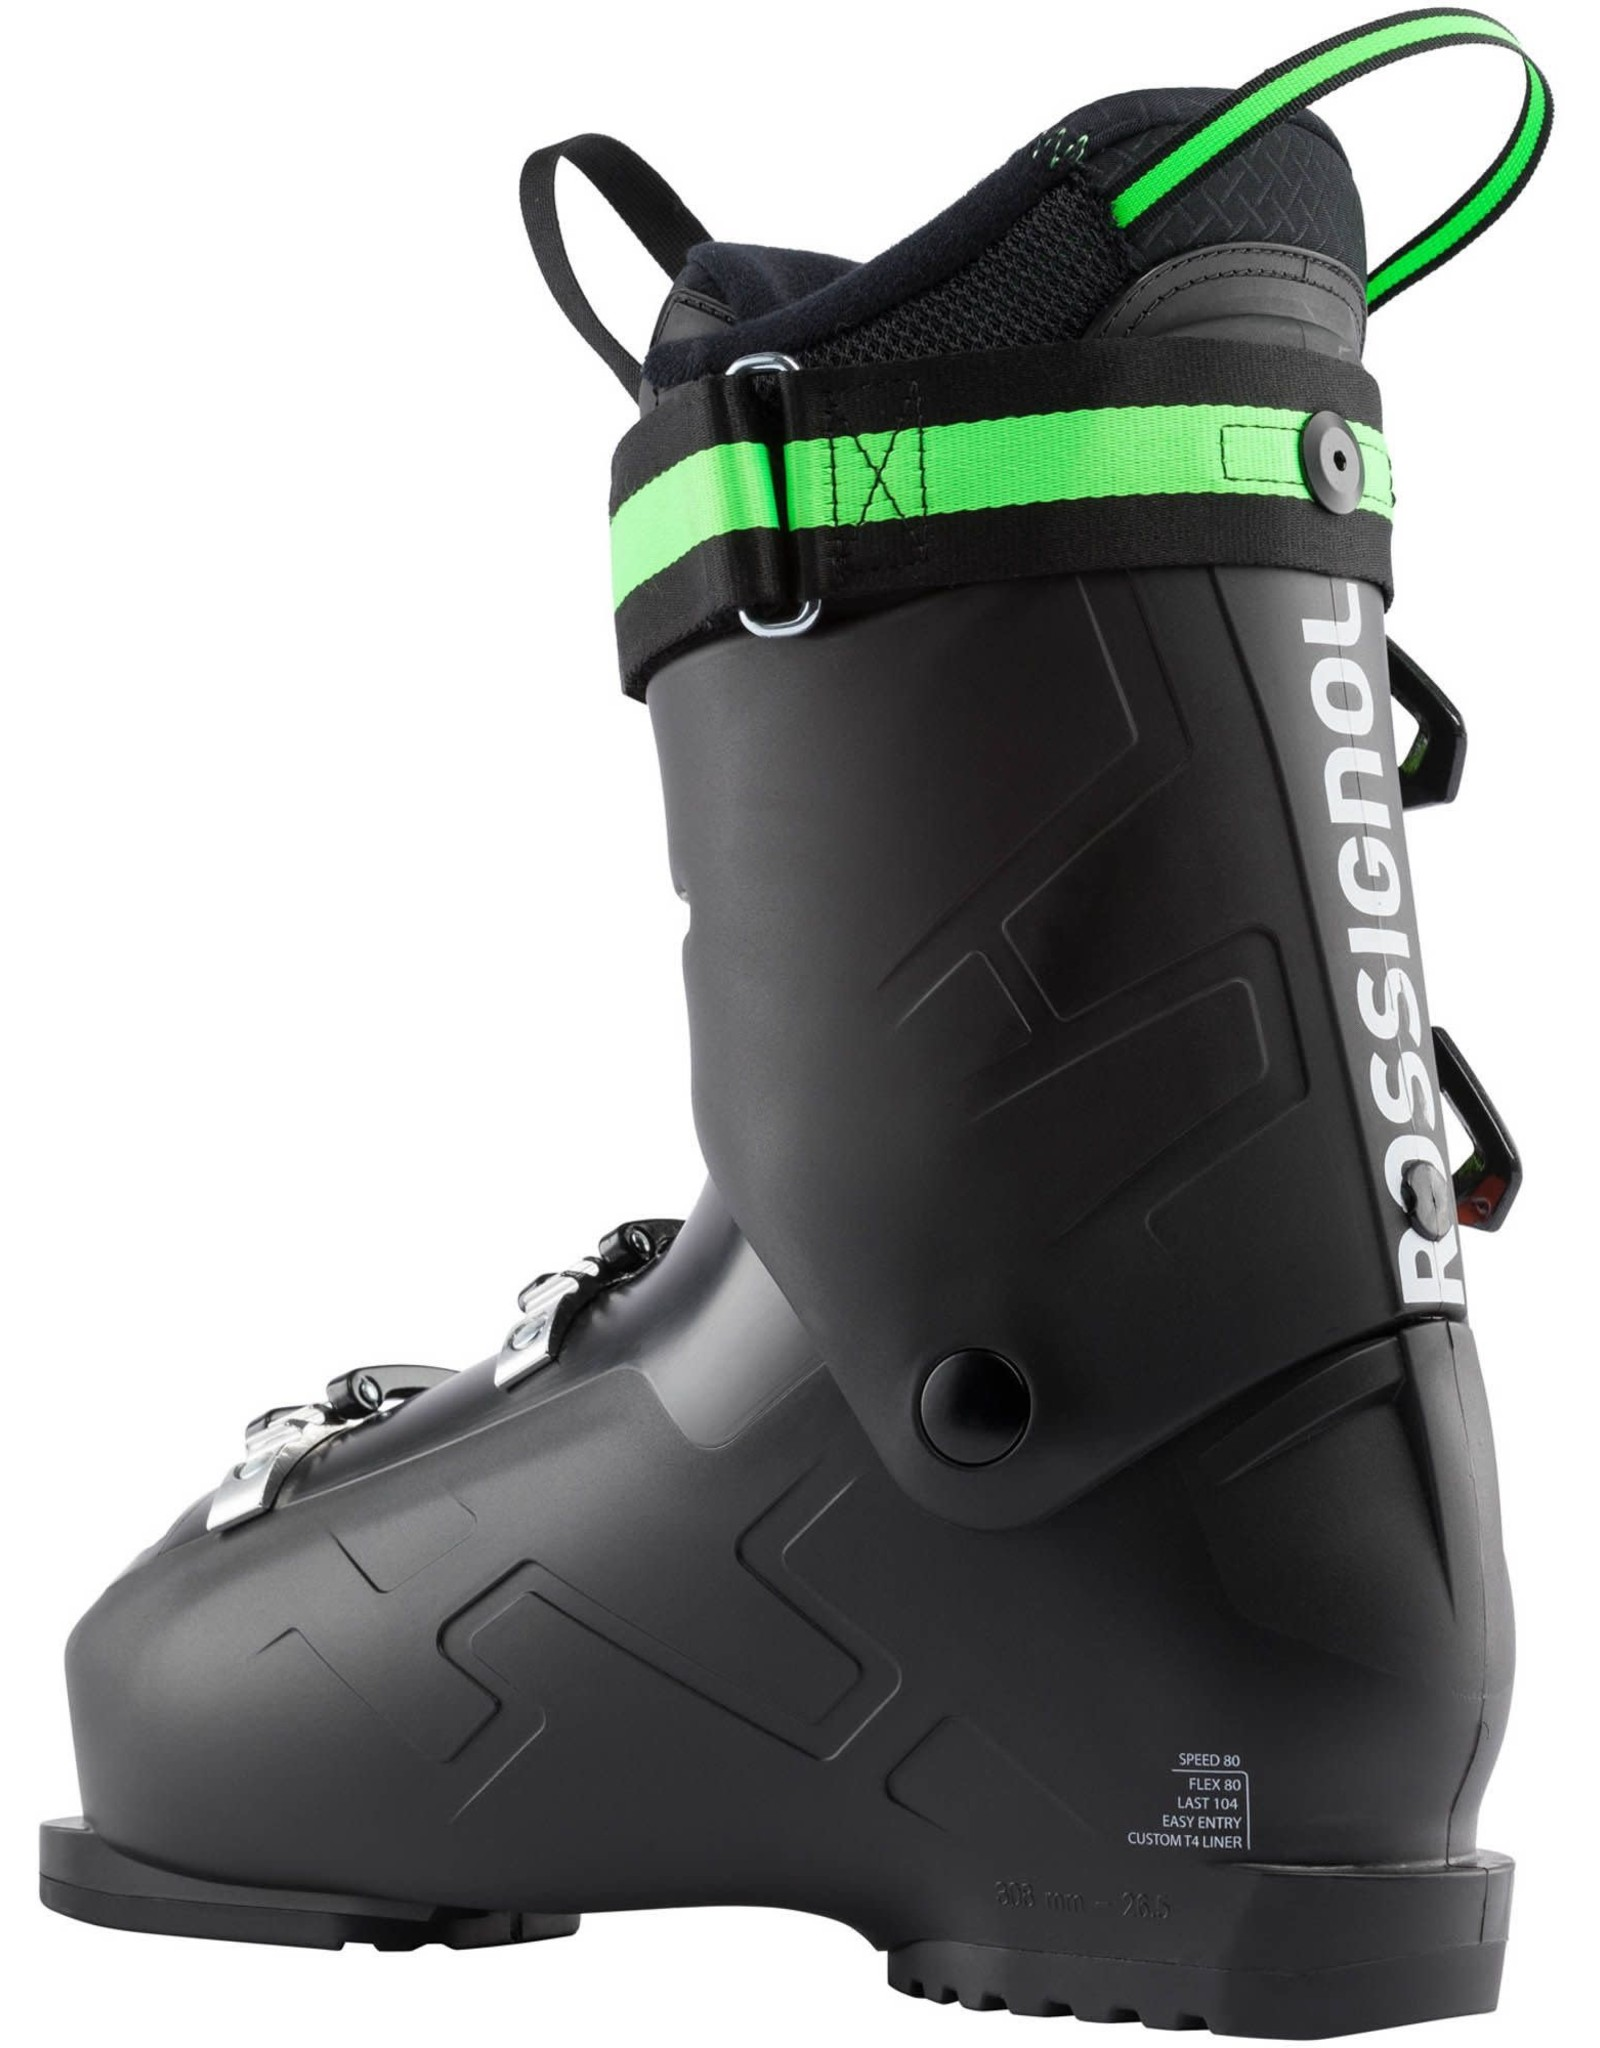 ROSSIGNOL ROSSIGNOL SPEED 80 BLACK MEN ALPINE SKI BOOT SR 20